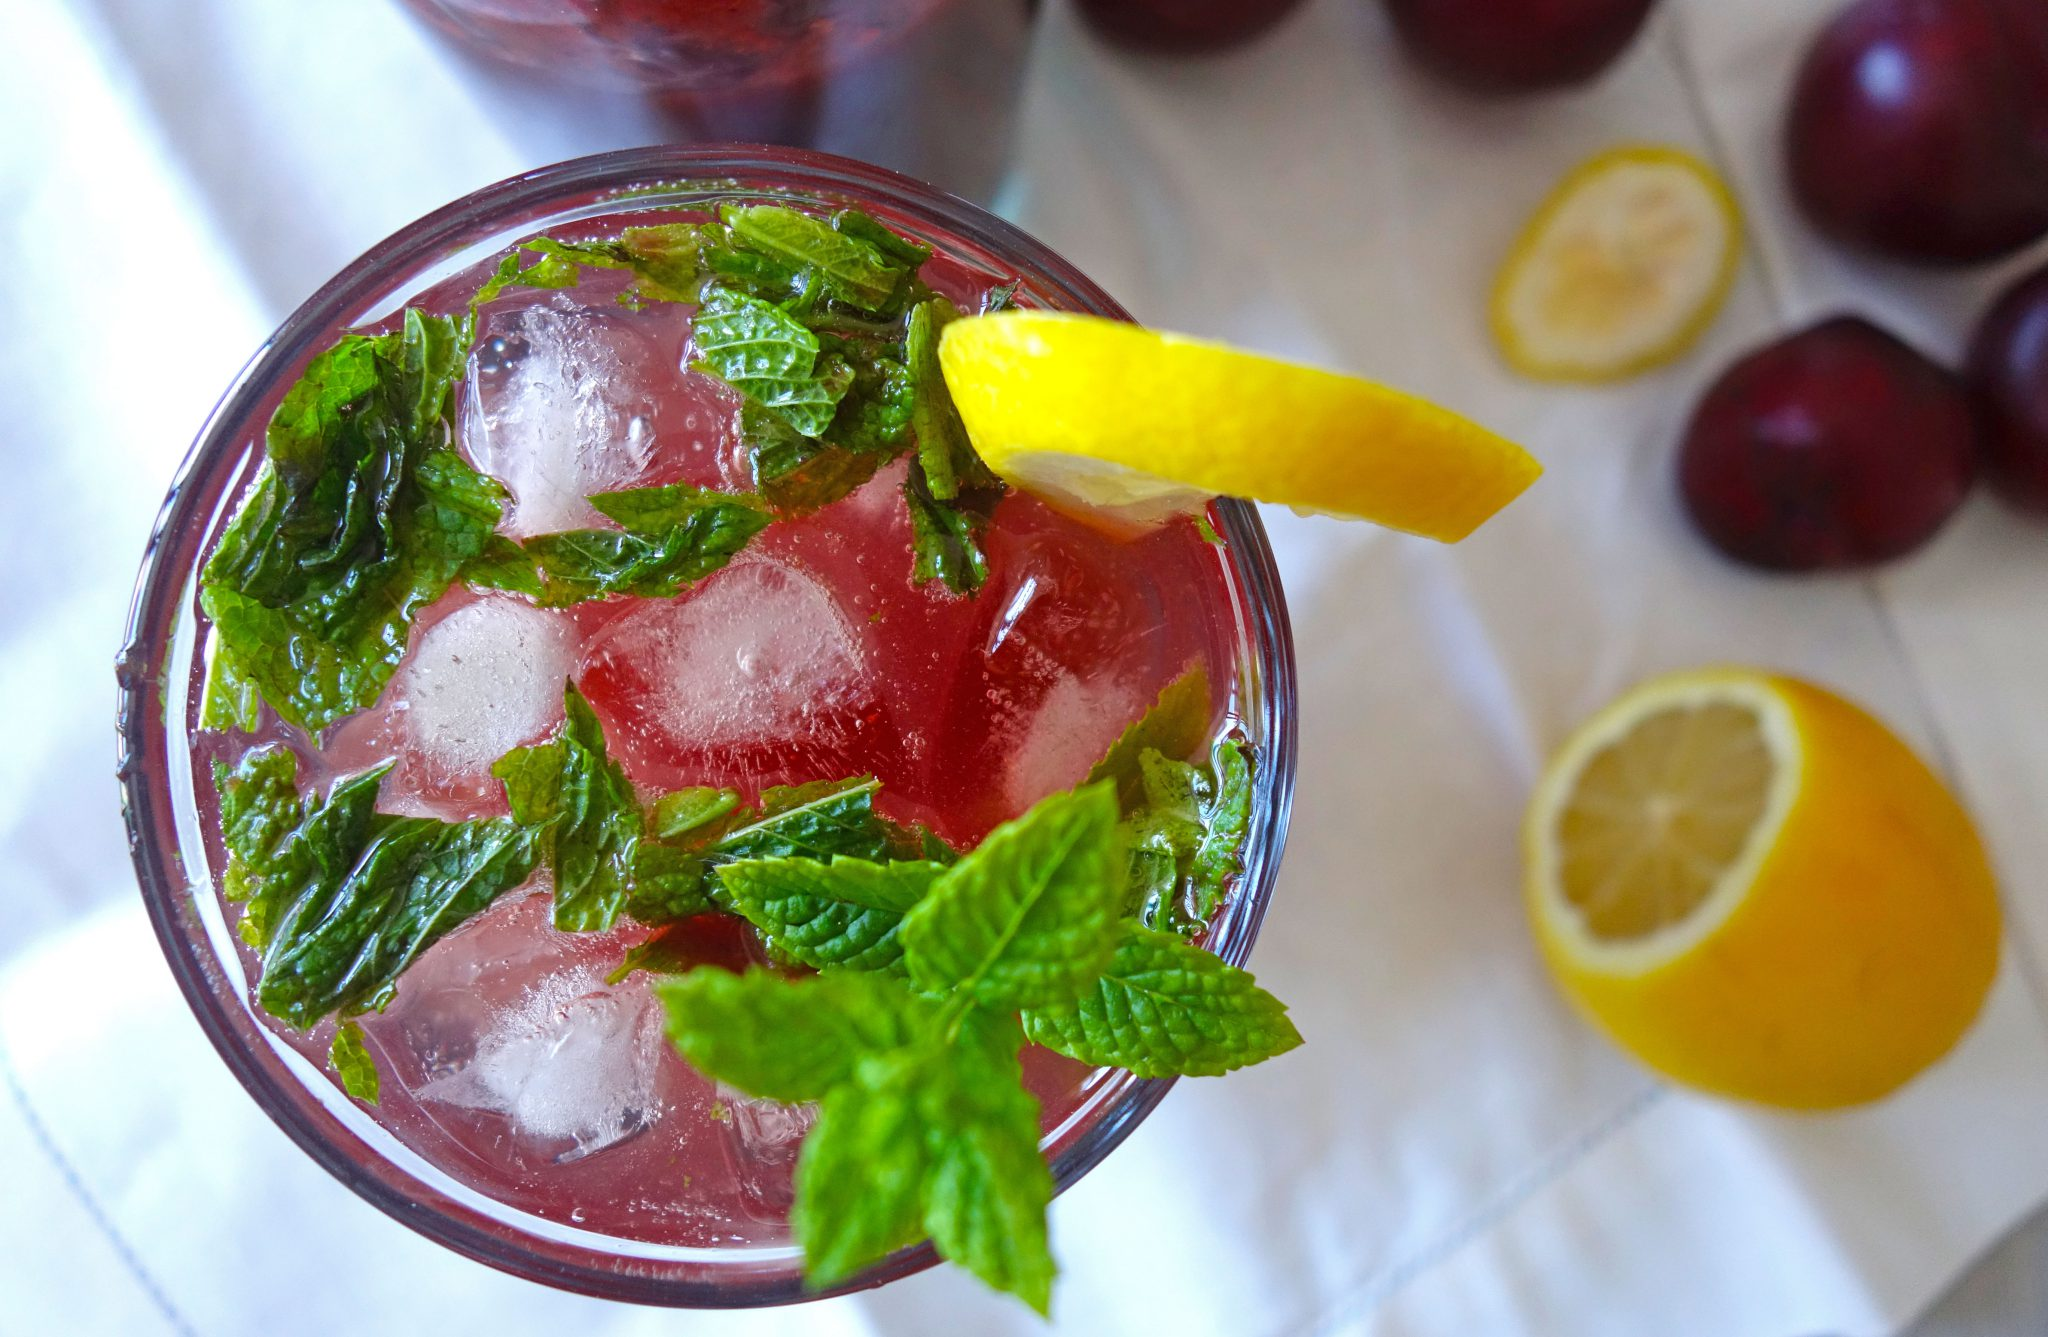 Sparkling Plum drink recipe